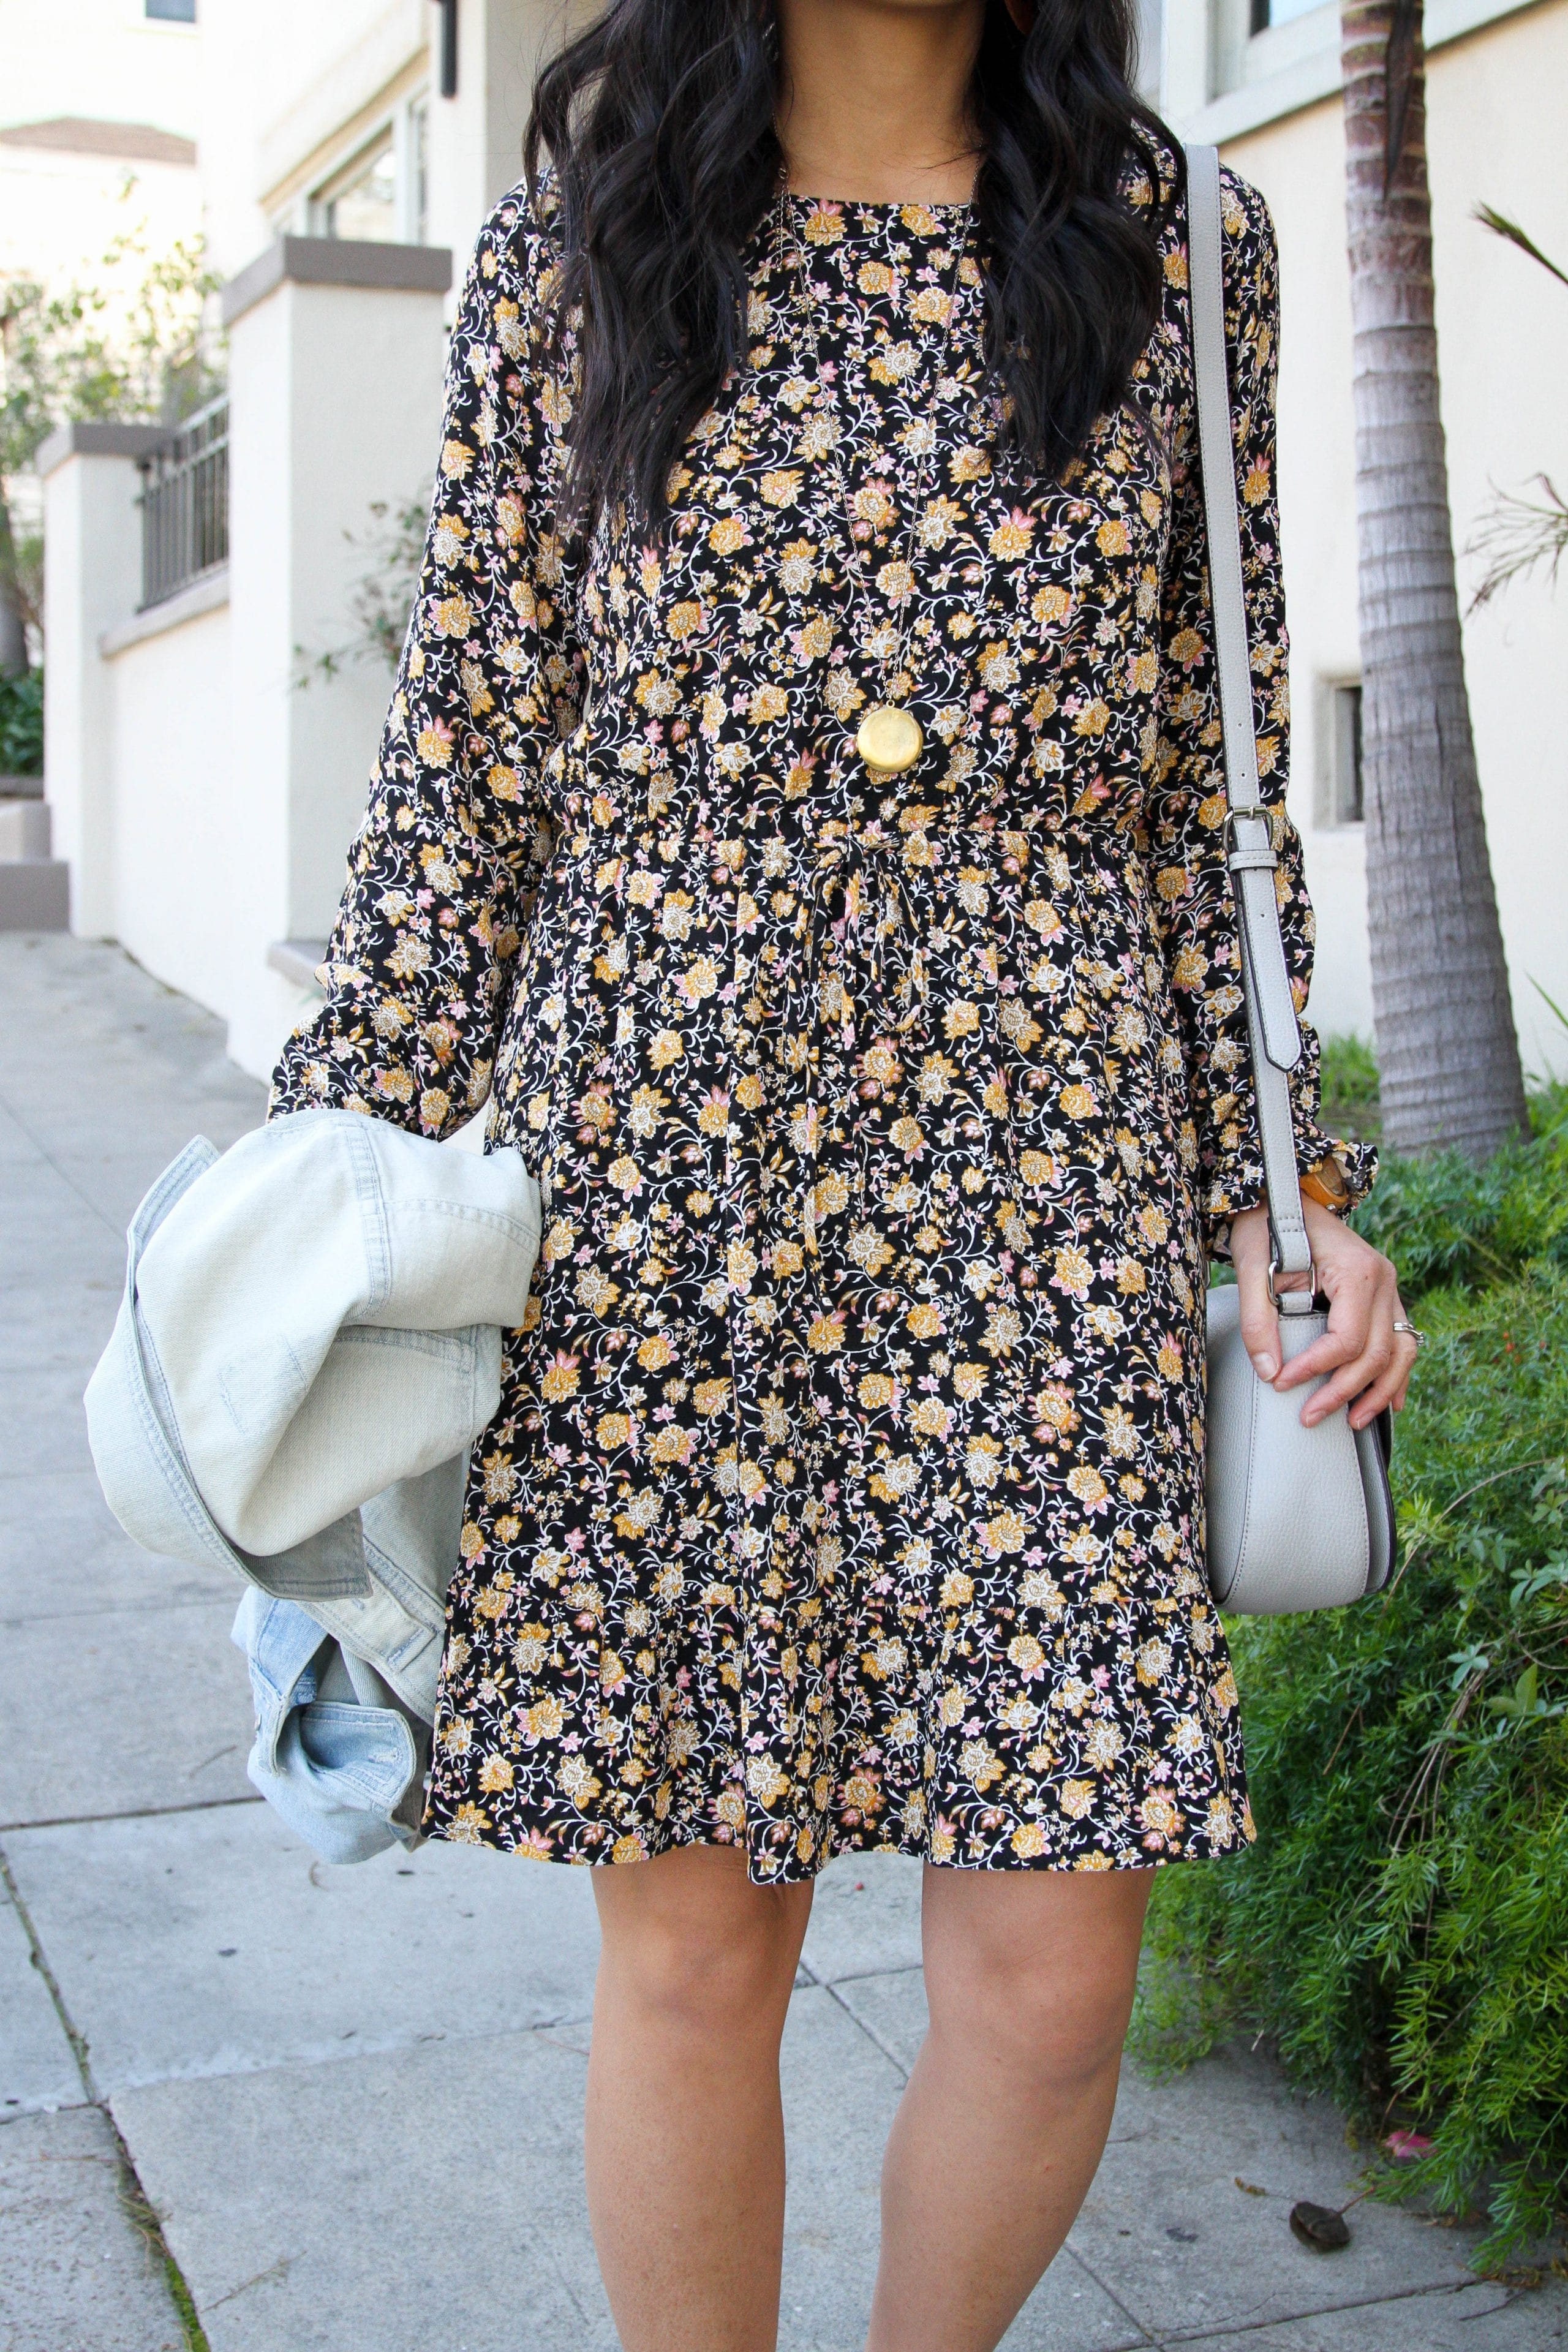 Statement Necklace + Black Floral Dress + Grey Crossbody Purse